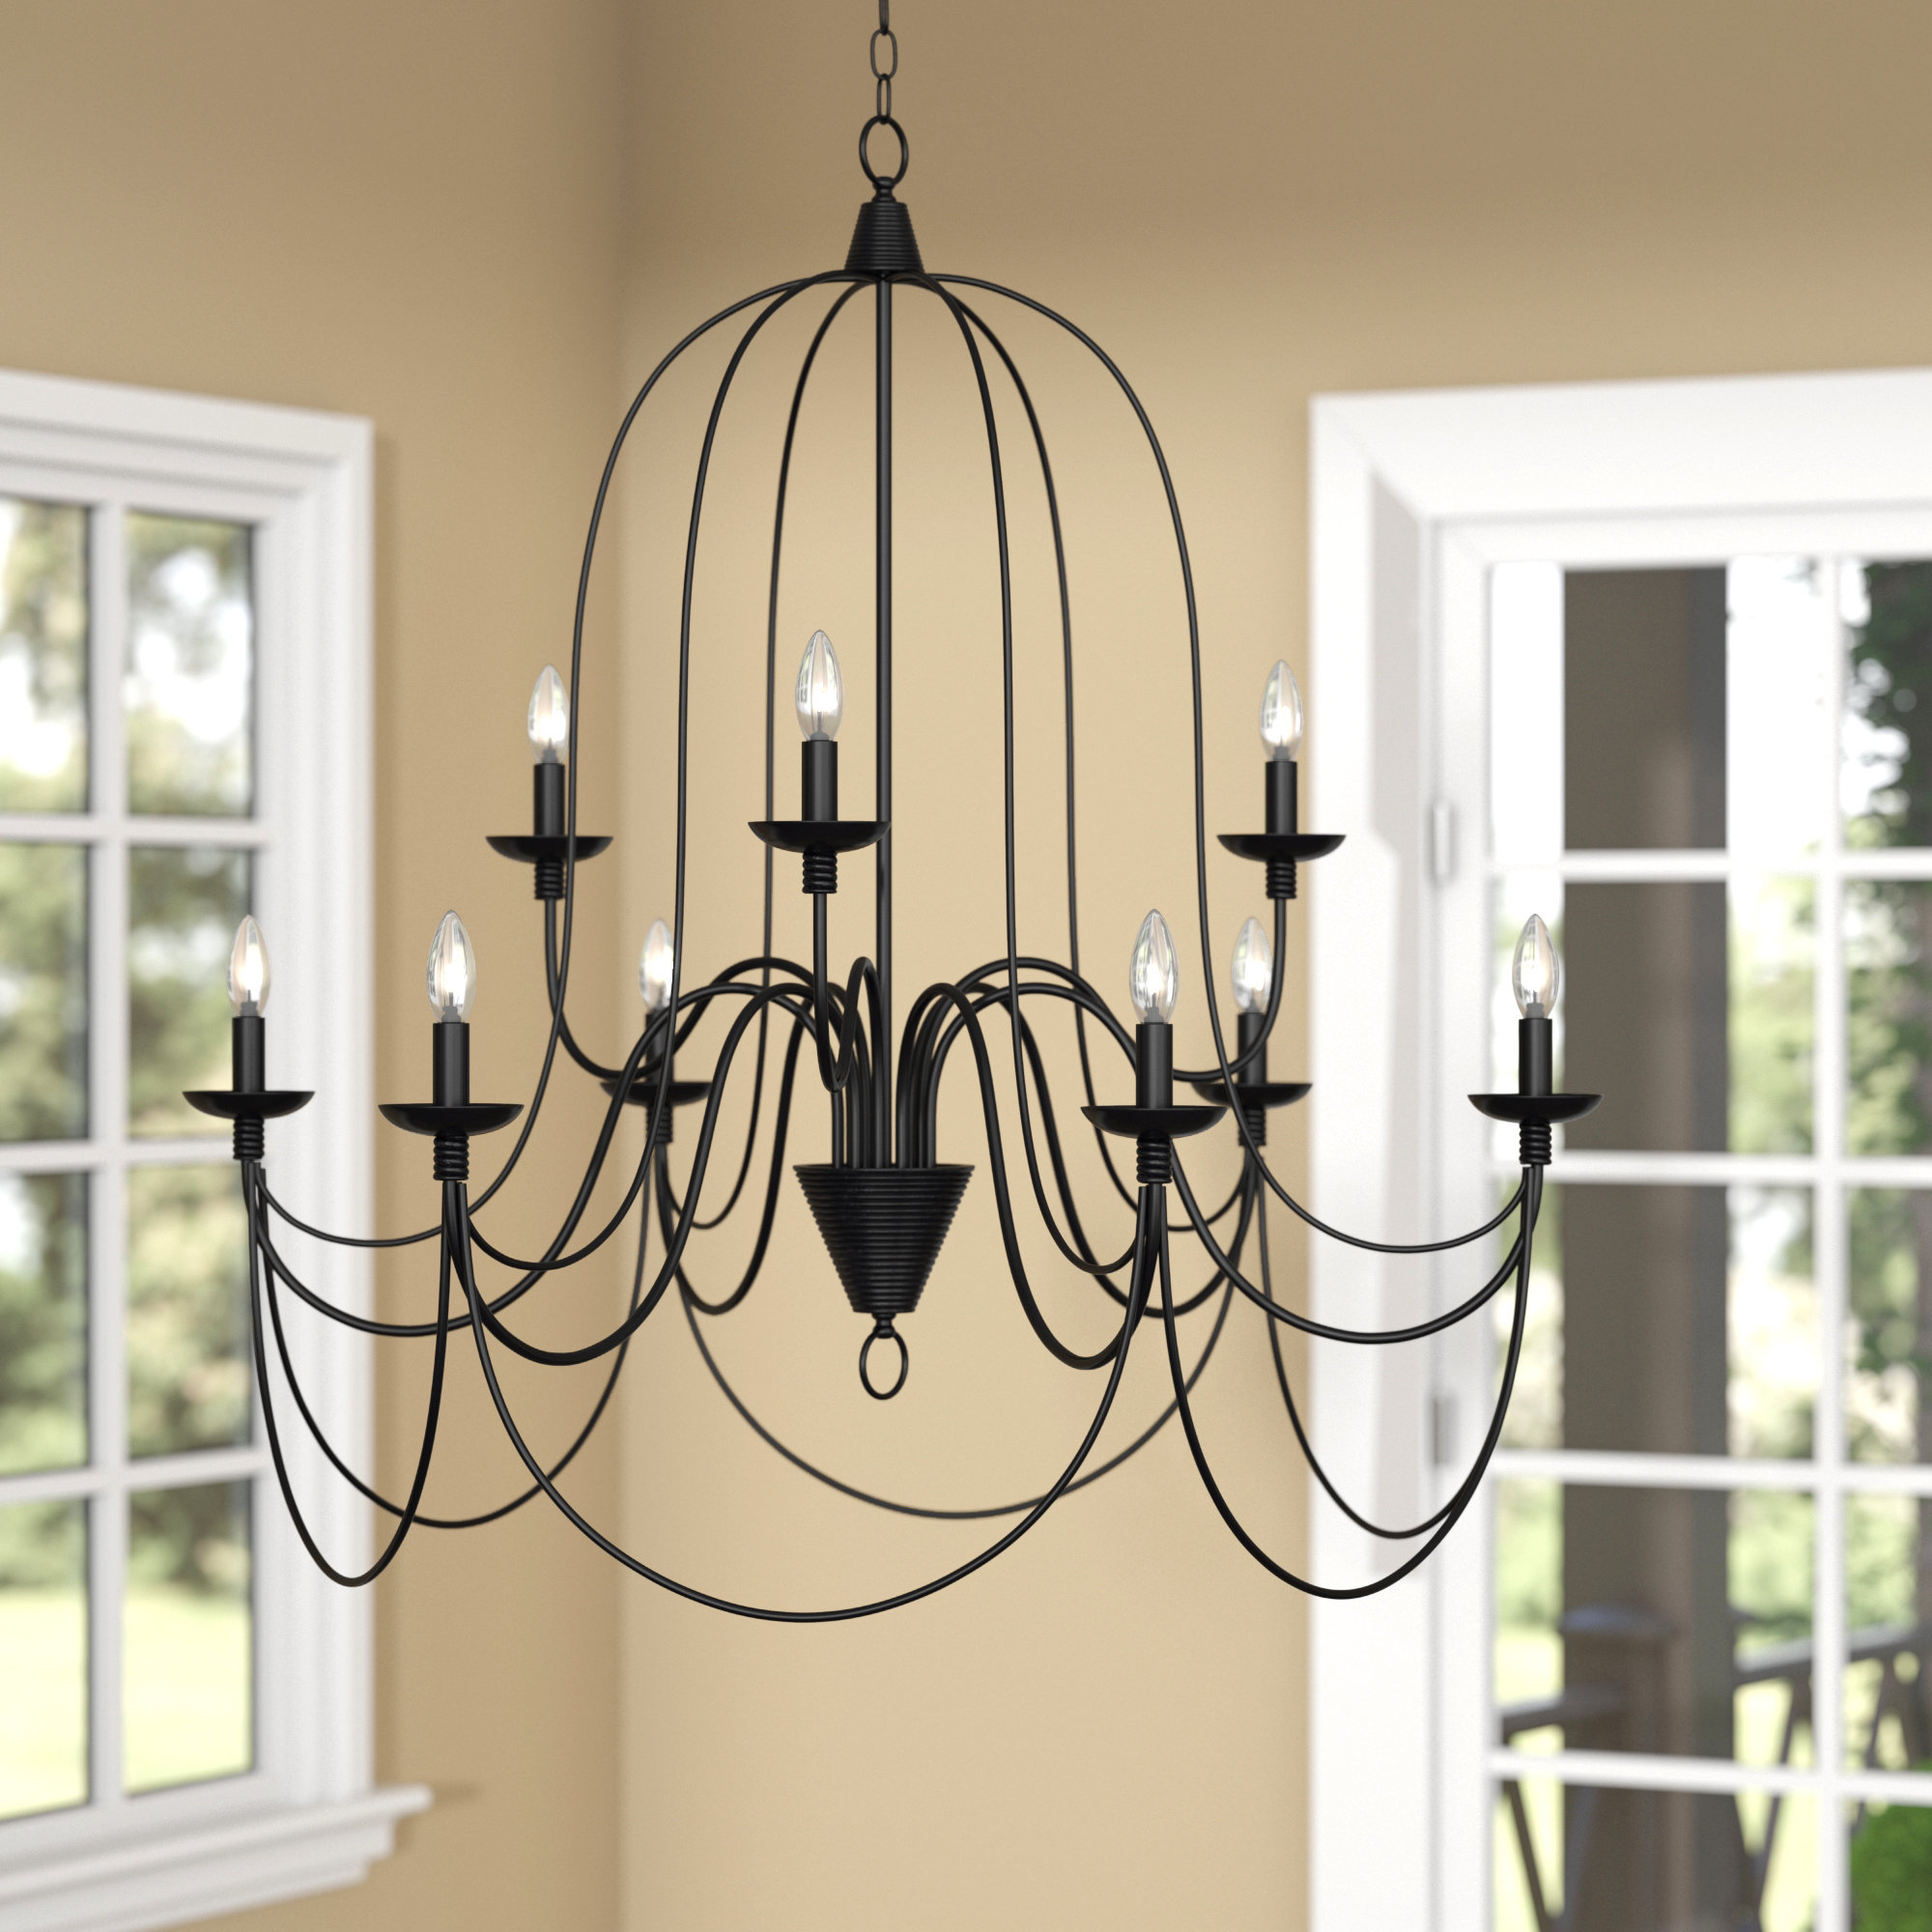 Watford 9 Light Candle Style Chandelier Within Most Popular Watford 9 Light Candle Style Chandeliers (Gallery 2 of 20)